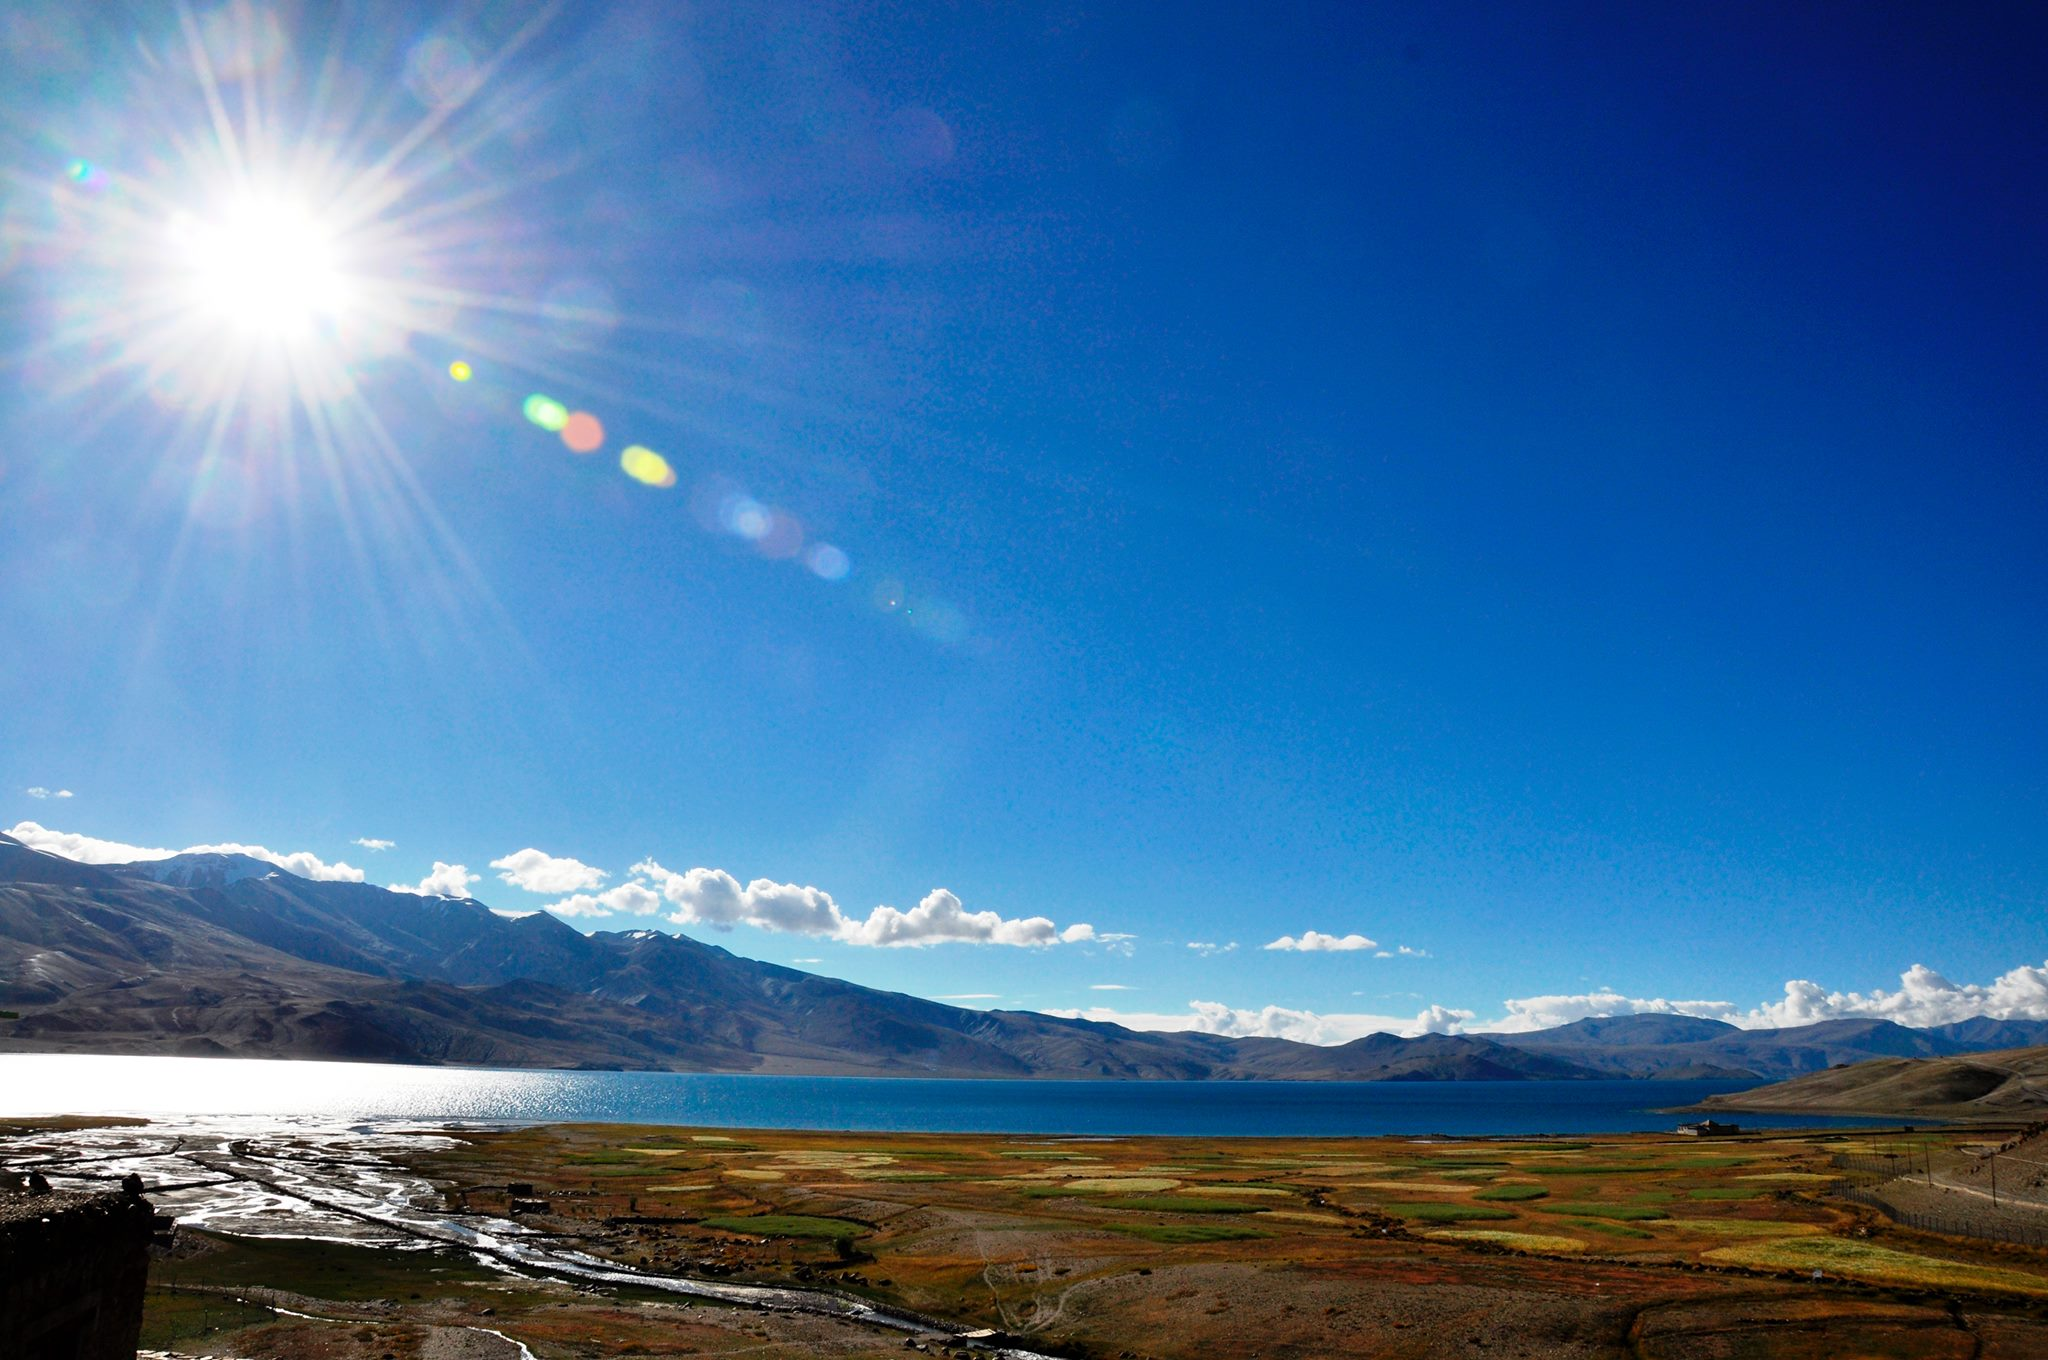 Tso Moriri lake in Changthang region of Ladakh is one of the most beautiful, calm and sacred; high altitude lakes in India.